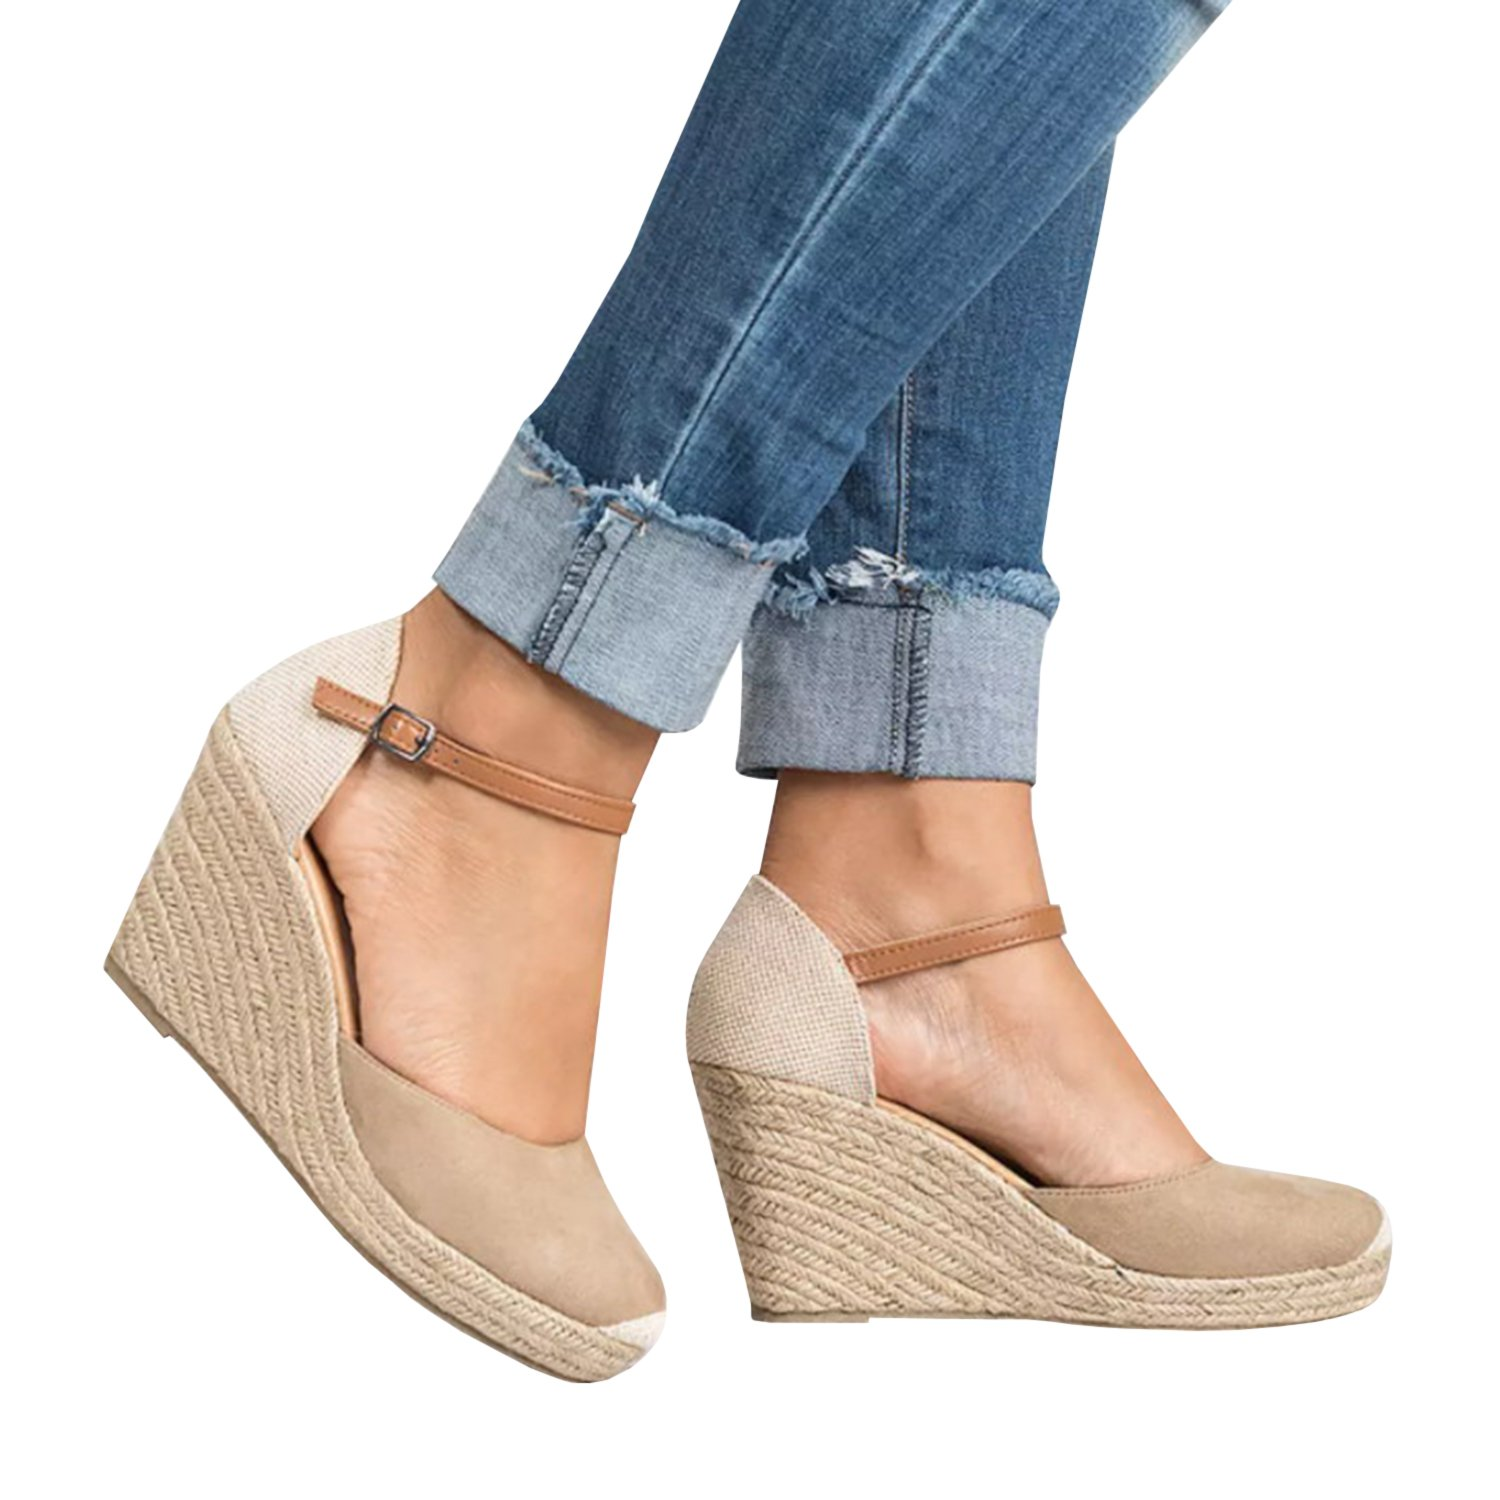 Womens Wedges Sandals Ankle Buckle Strap Espadrilles Platform Closed Toe Cut Out Casual Summer Shoes